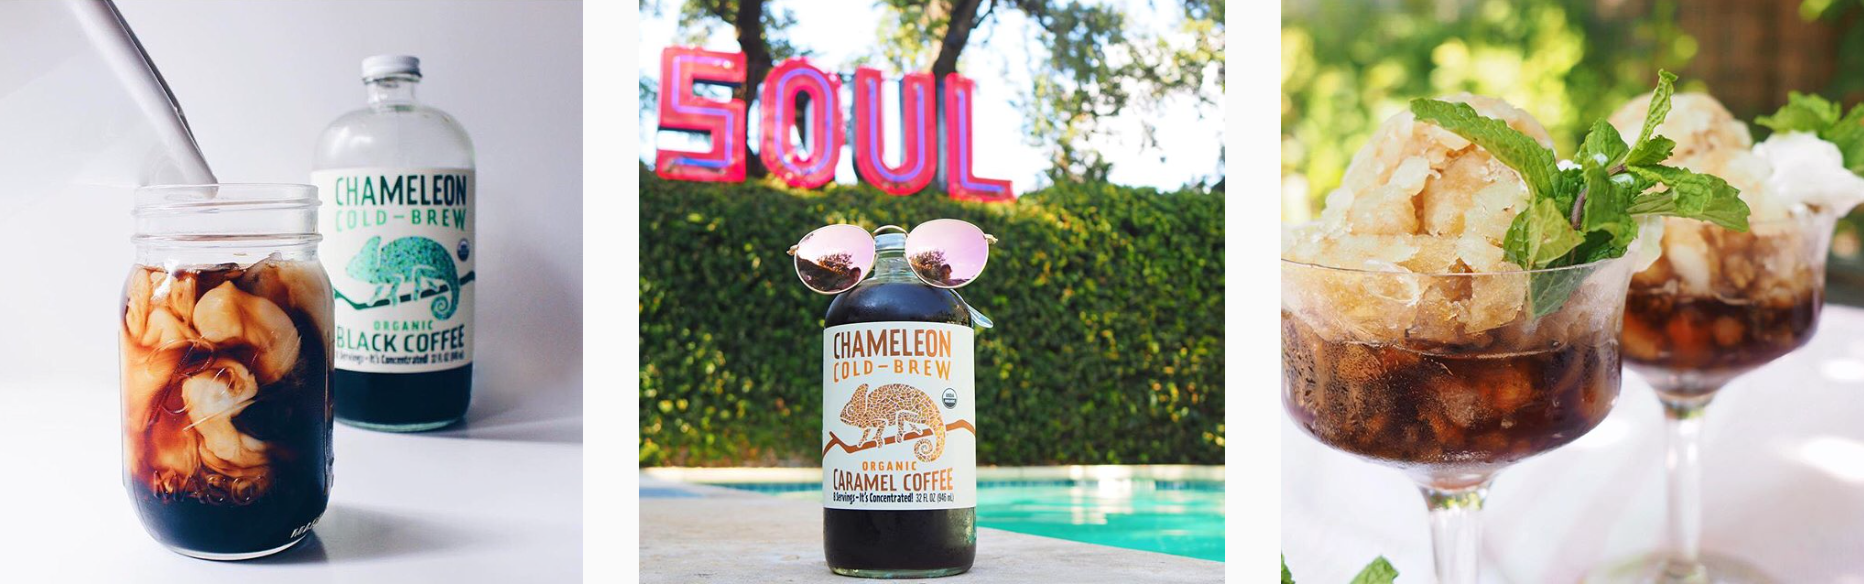 National Coffee Day - Planoly Blog - Chameleon Cold Brew